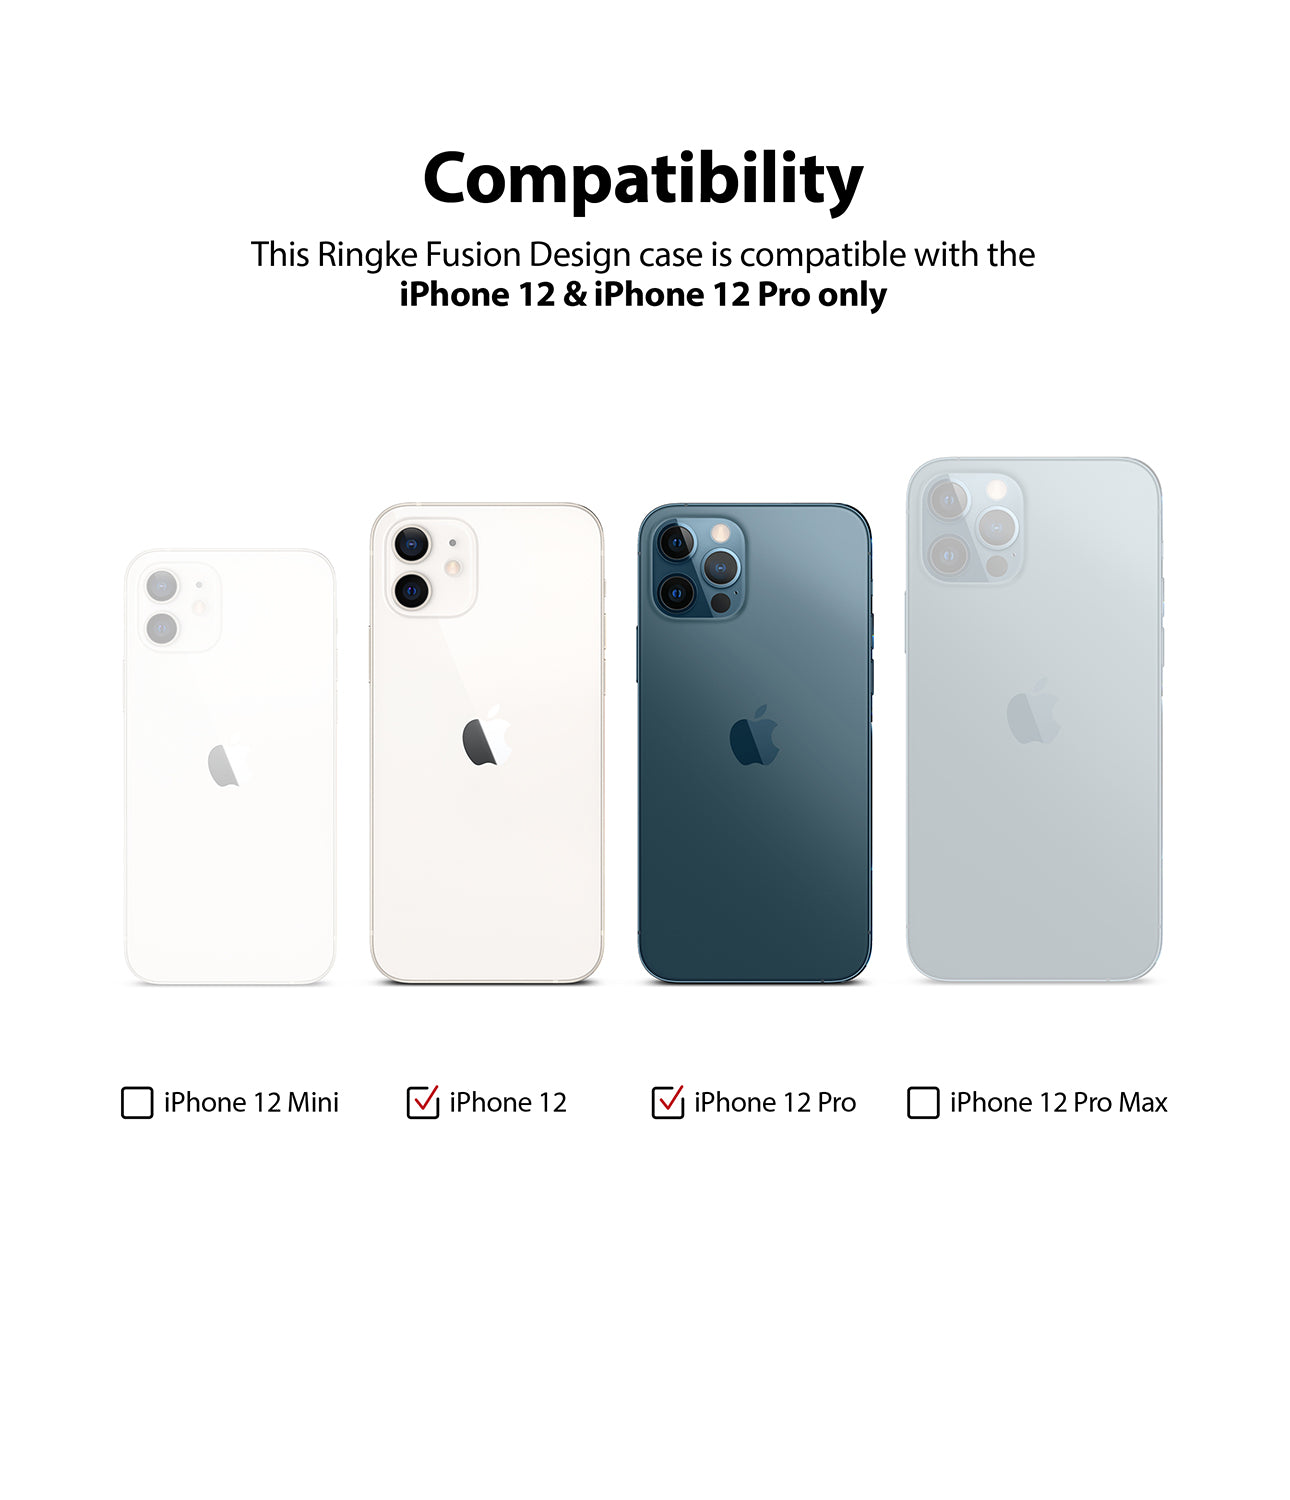 compatible with iphone 12 / iphone 12 pro